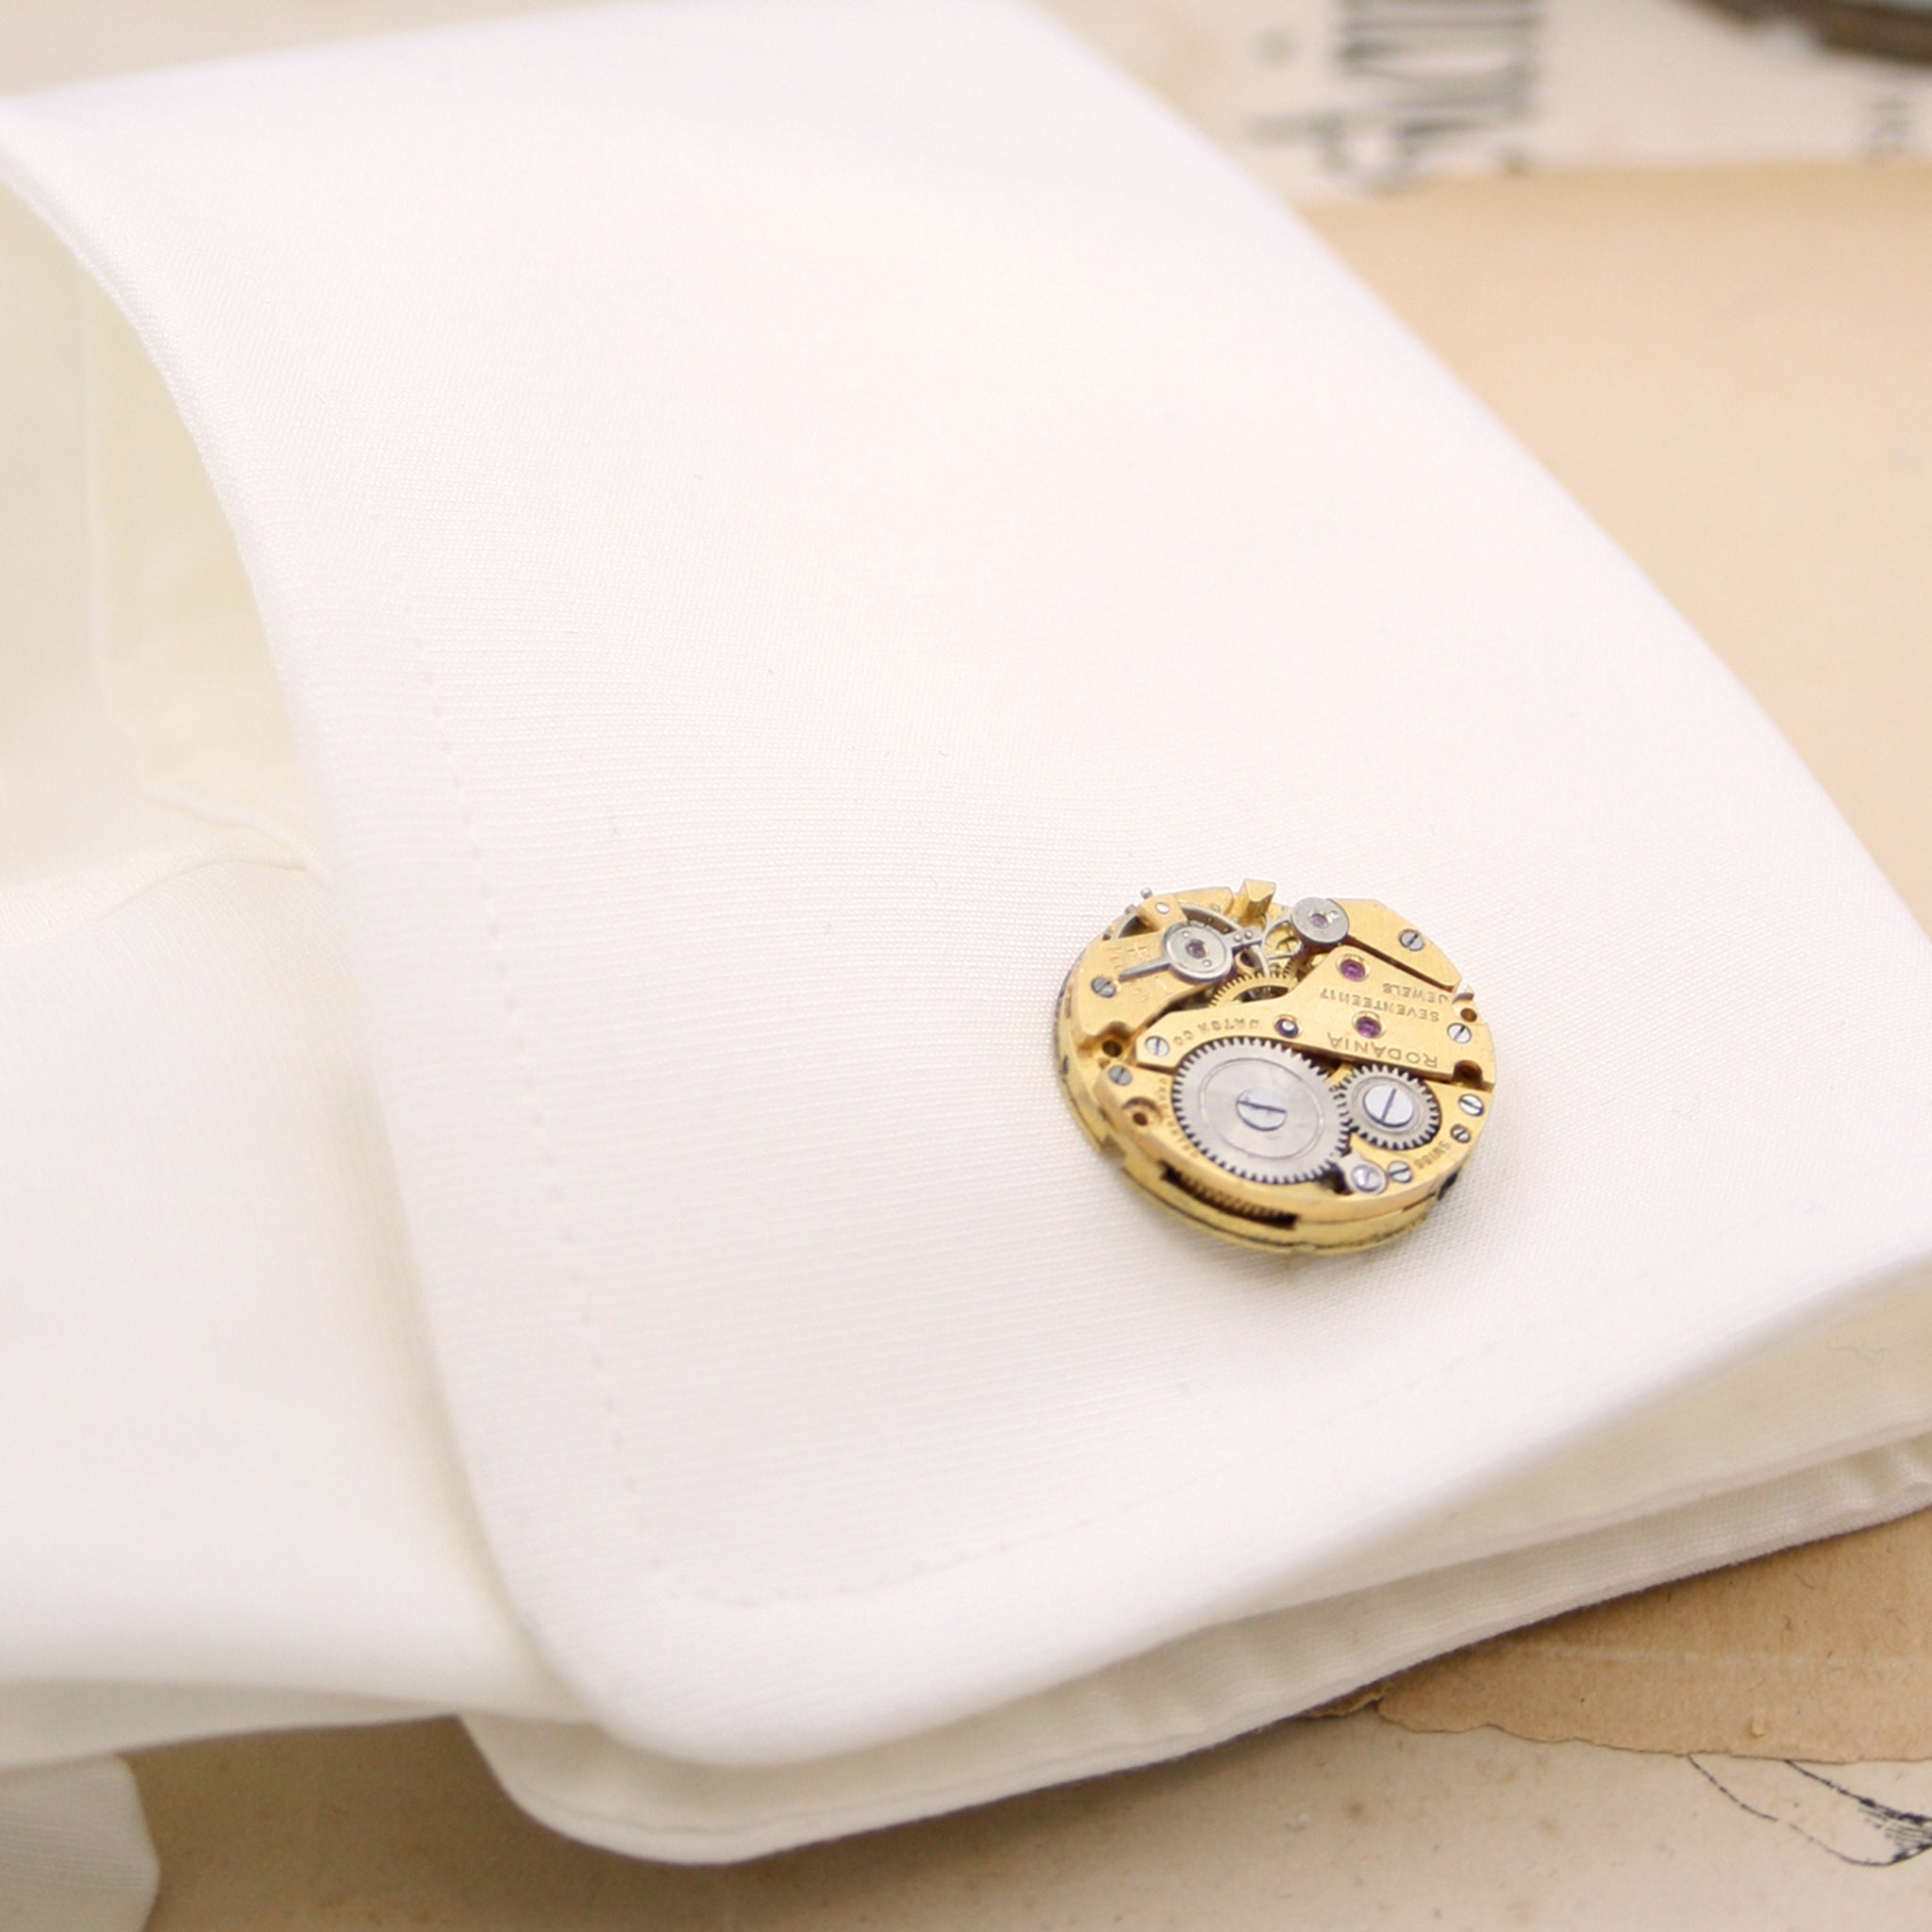 gold steampunk cufflinks featuring antique watch movements in a shift cuff